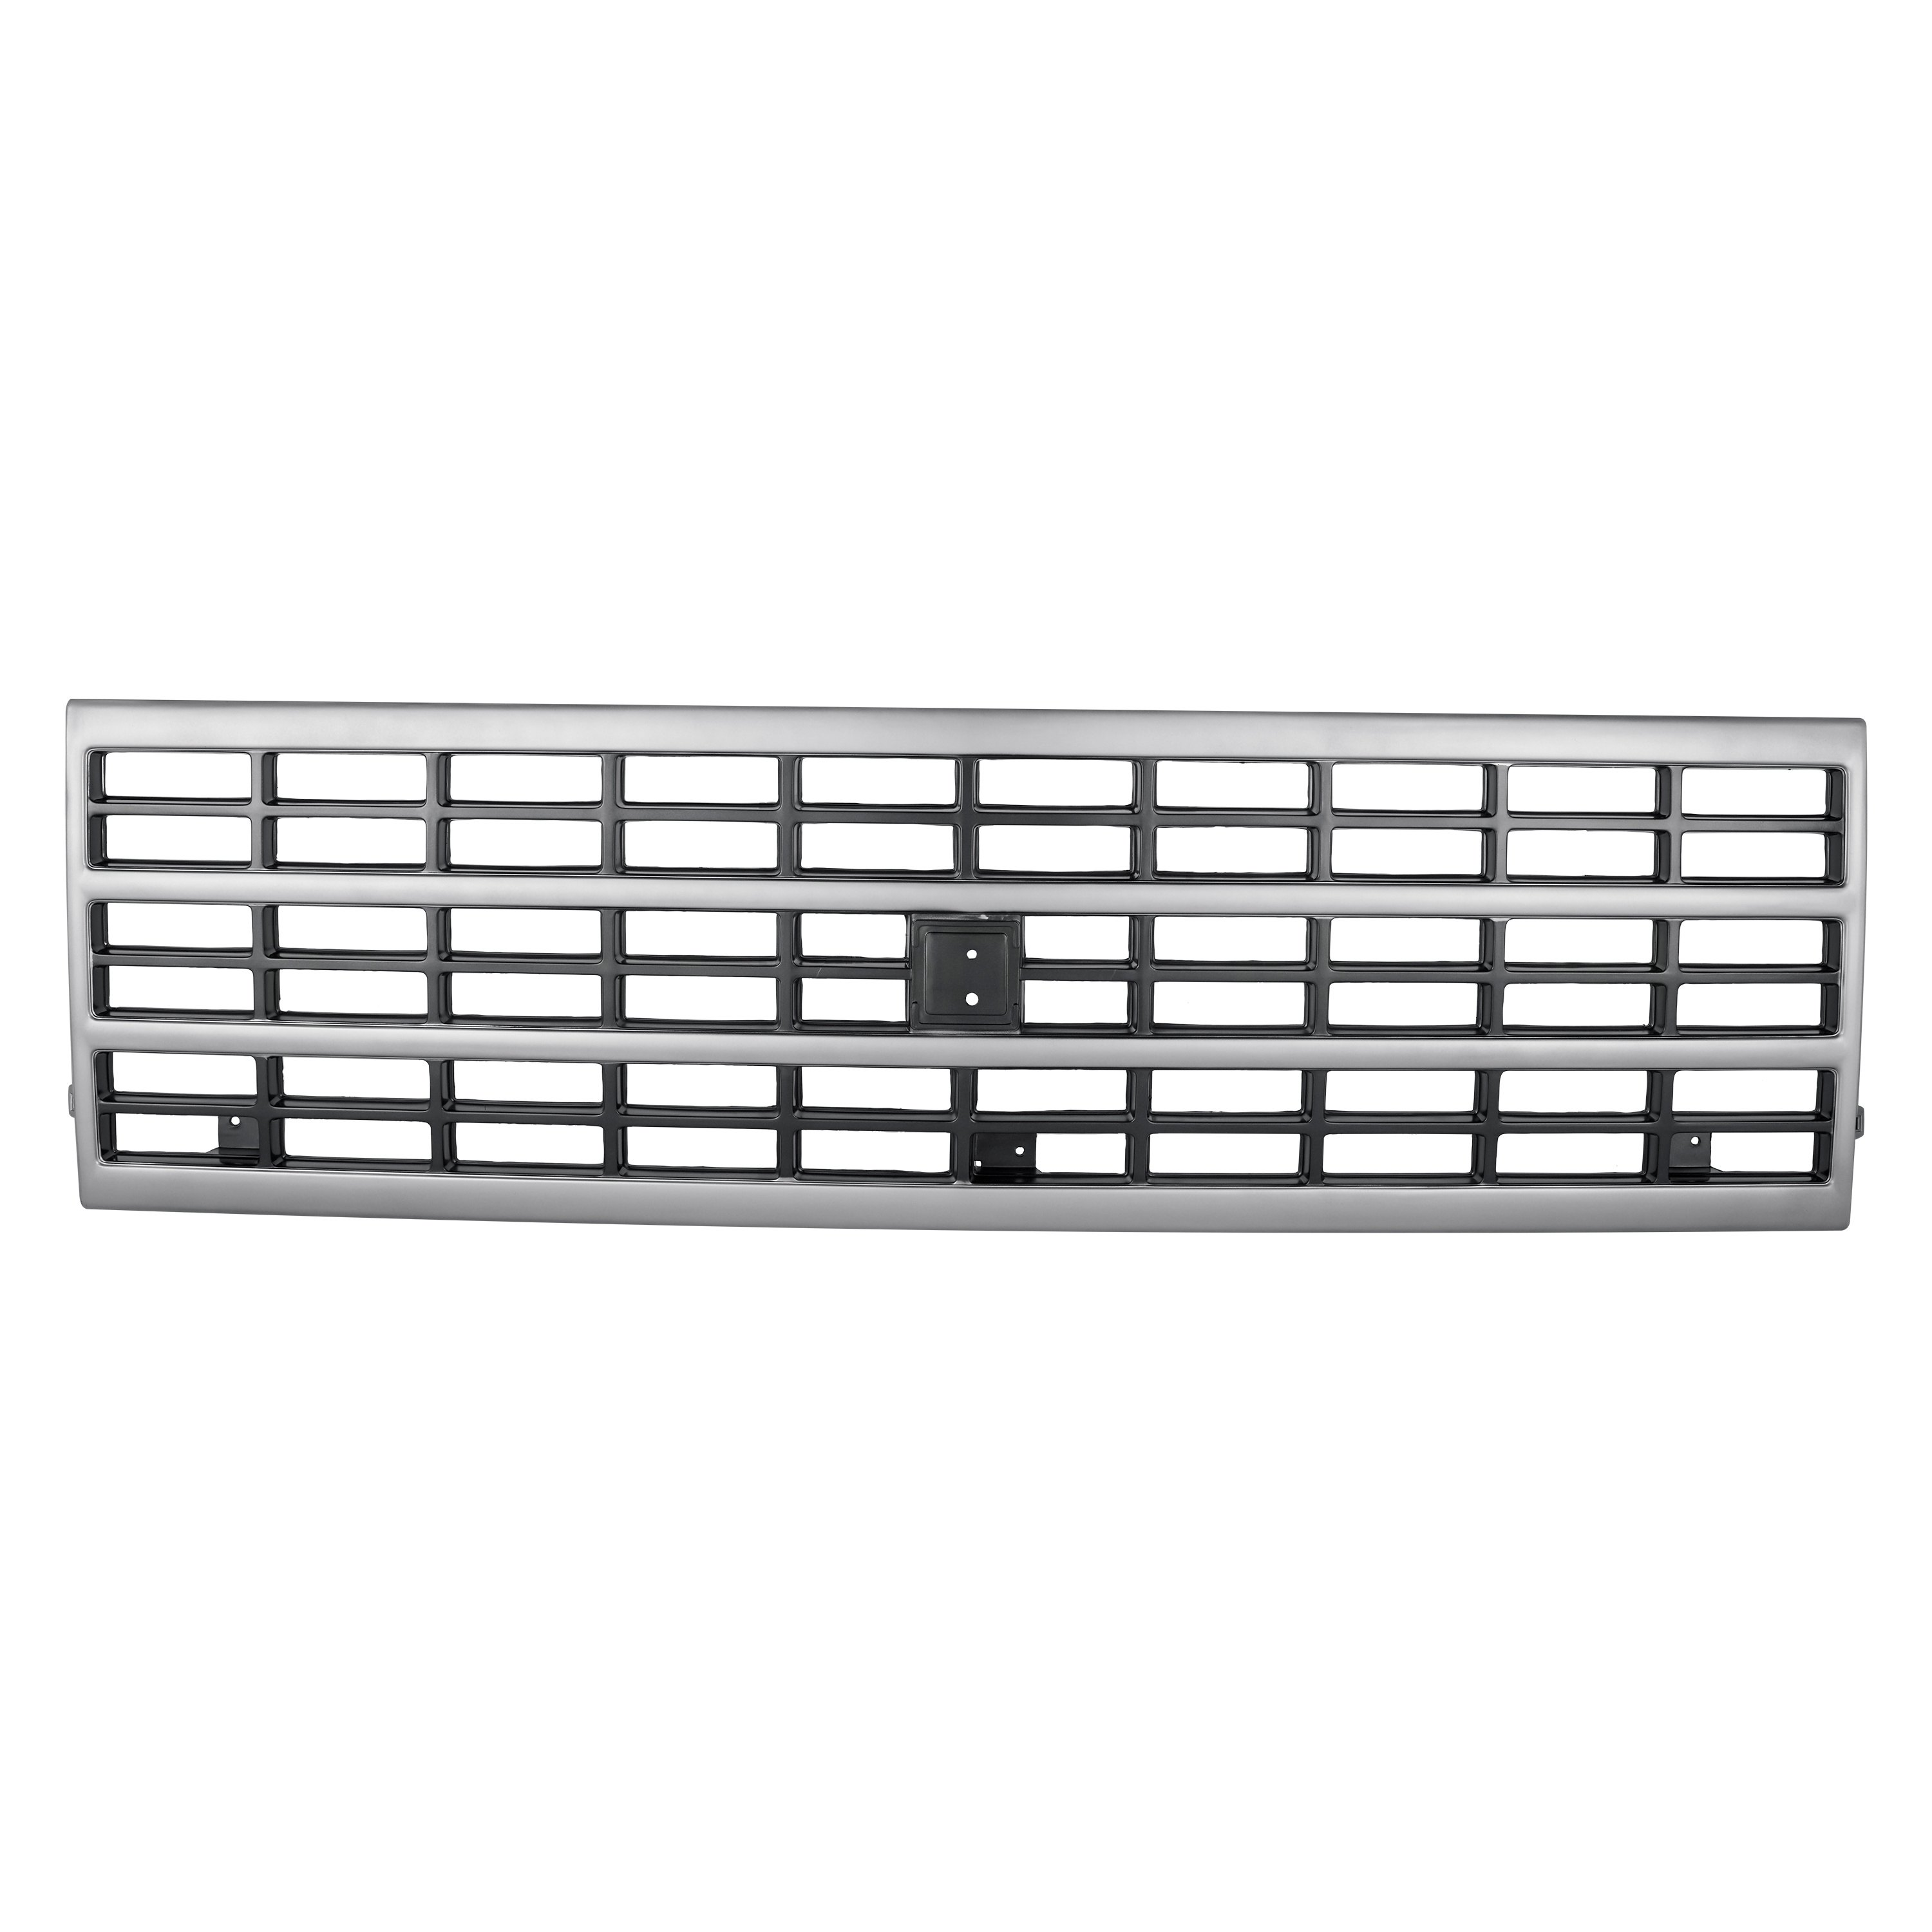 replace chevy g10 g20 g30 1995 grille. Black Bedroom Furniture Sets. Home Design Ideas